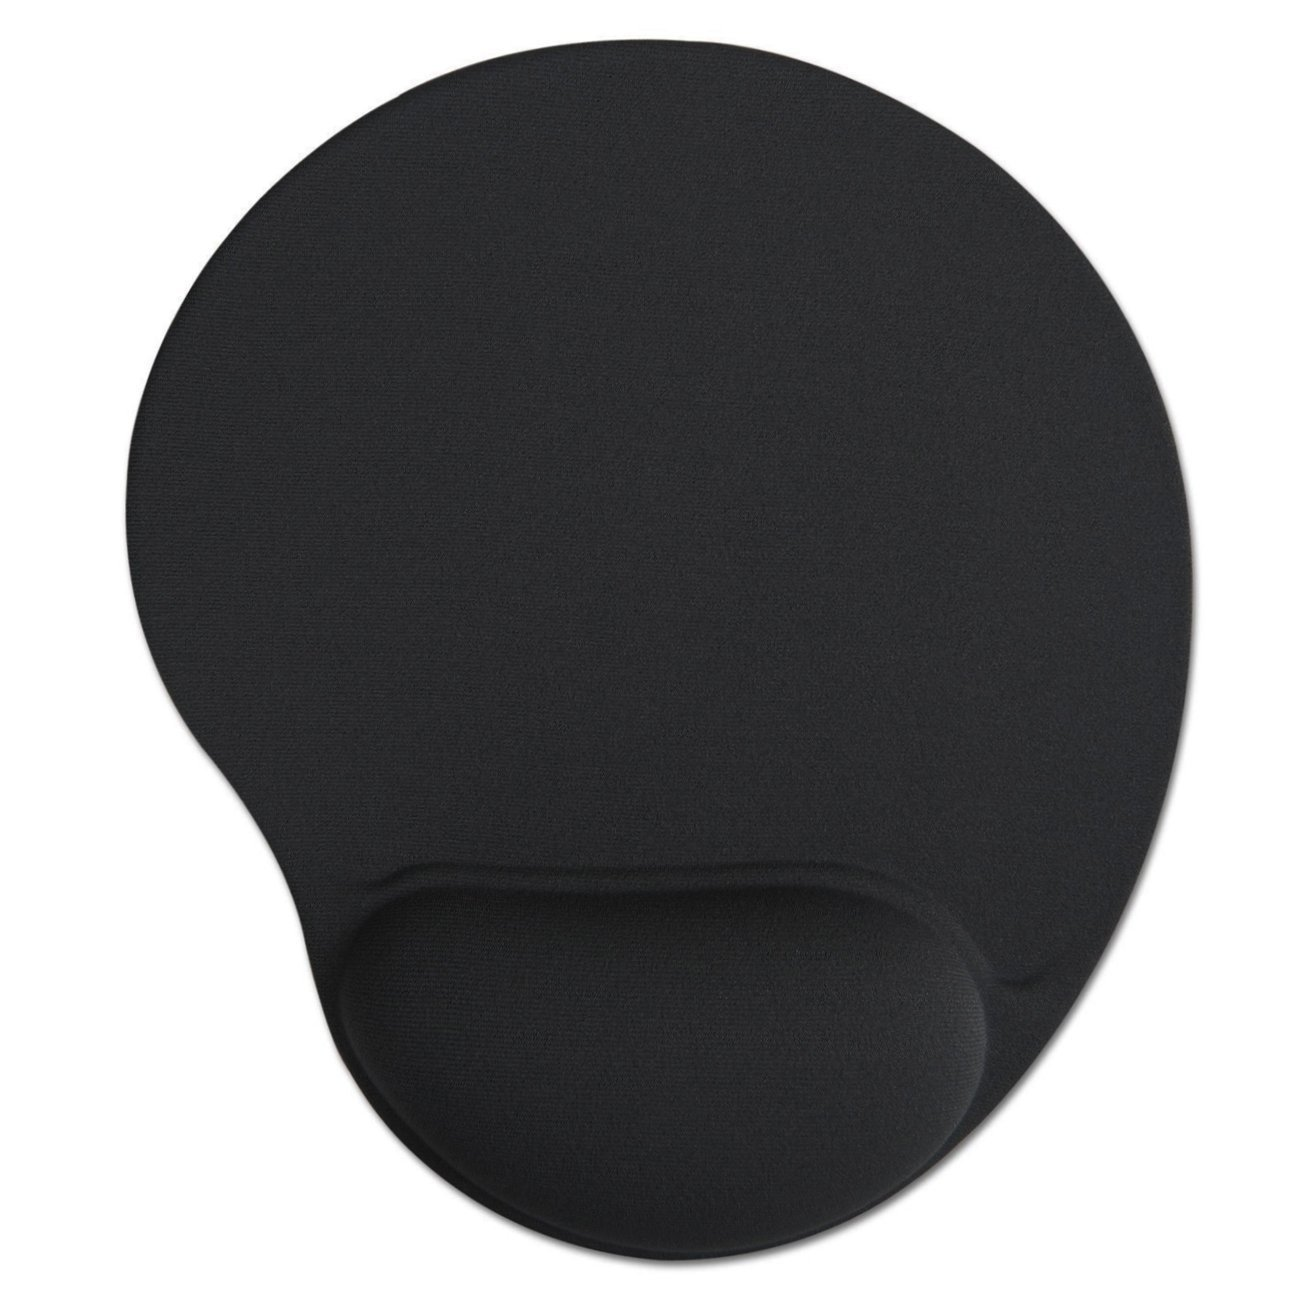 Creatrek Computer Mouse Pad Wrist Support/Keyboard Wrist Rest Support for Office, Computer, Laptop/Mac Durable/Comfortable / Lightweight for Easy Typing/Pain Relief (Starry) YJM